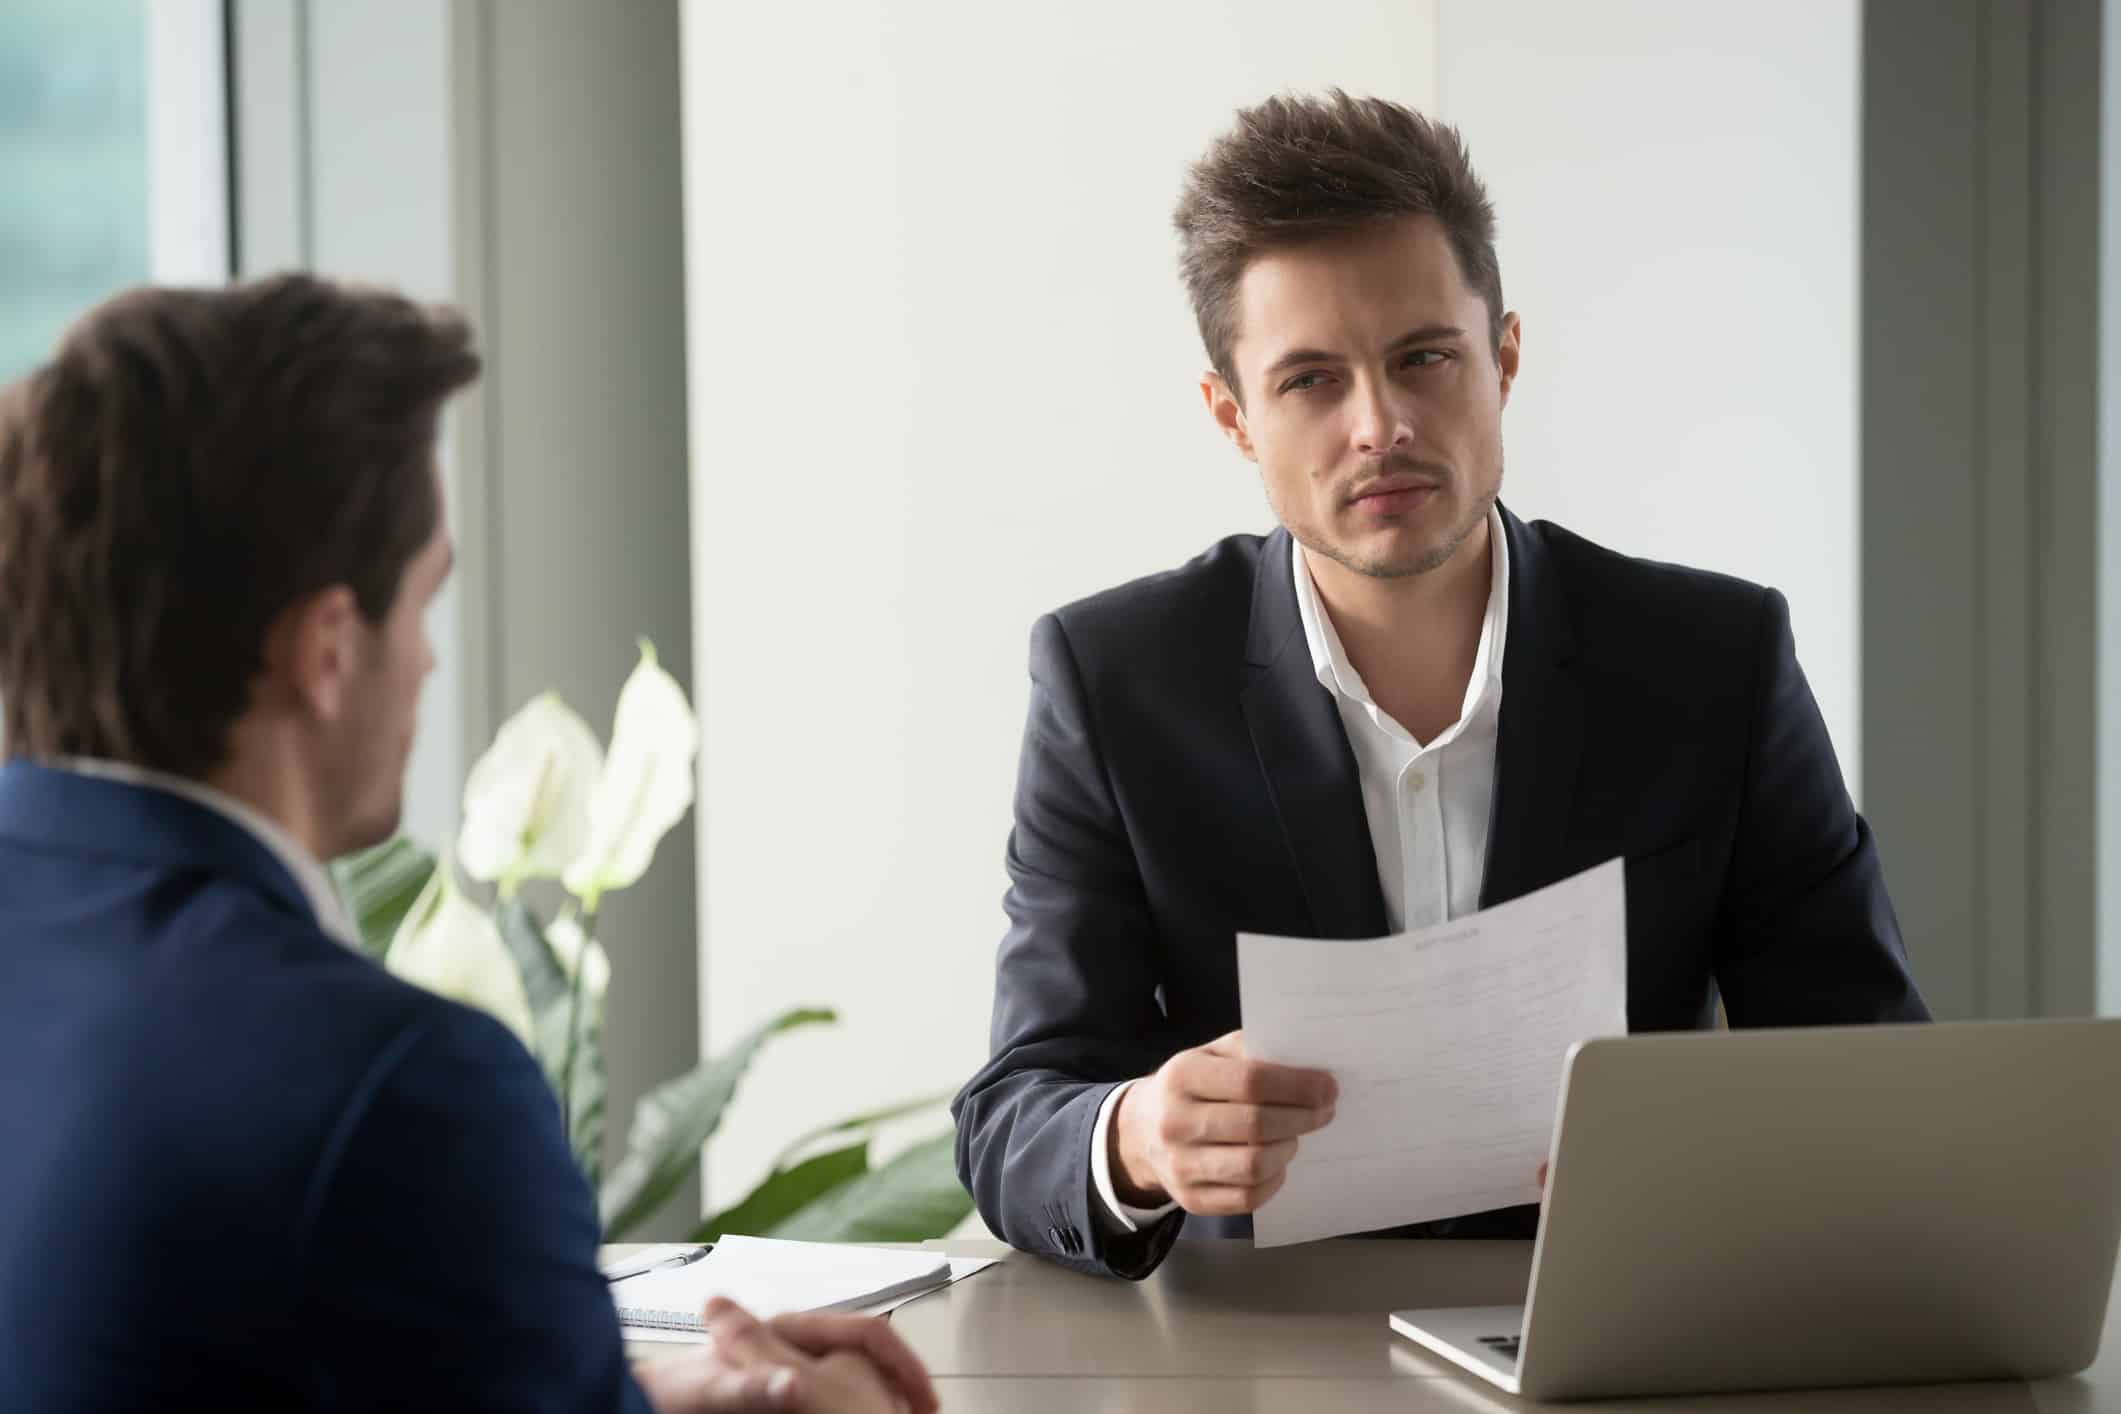 Distrustful hiring manager holding applicant's resume